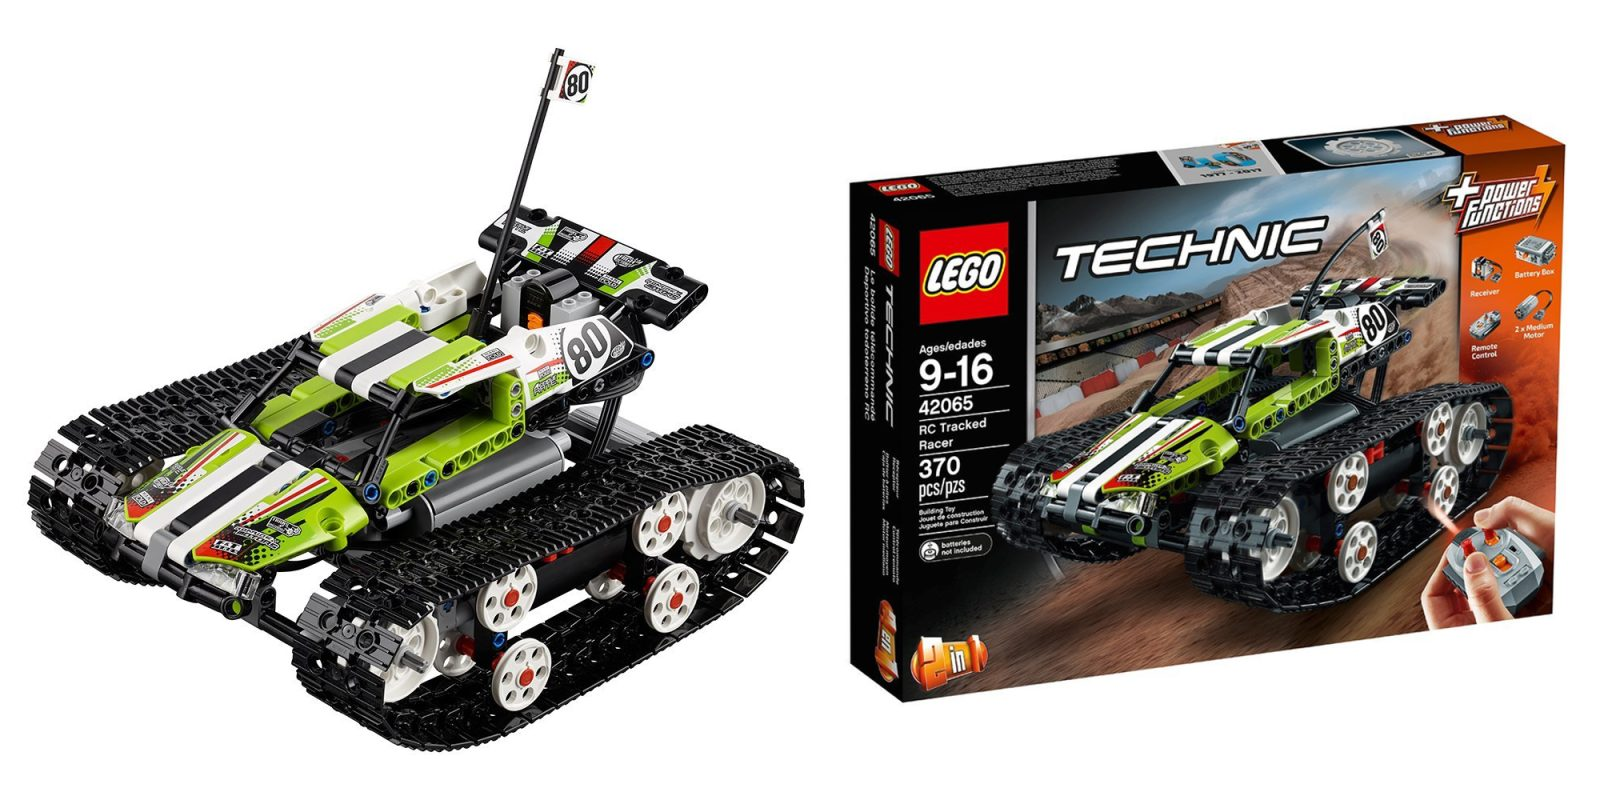 Lego Technic Rc Tracked Racer Hits New Amazon Low At 80